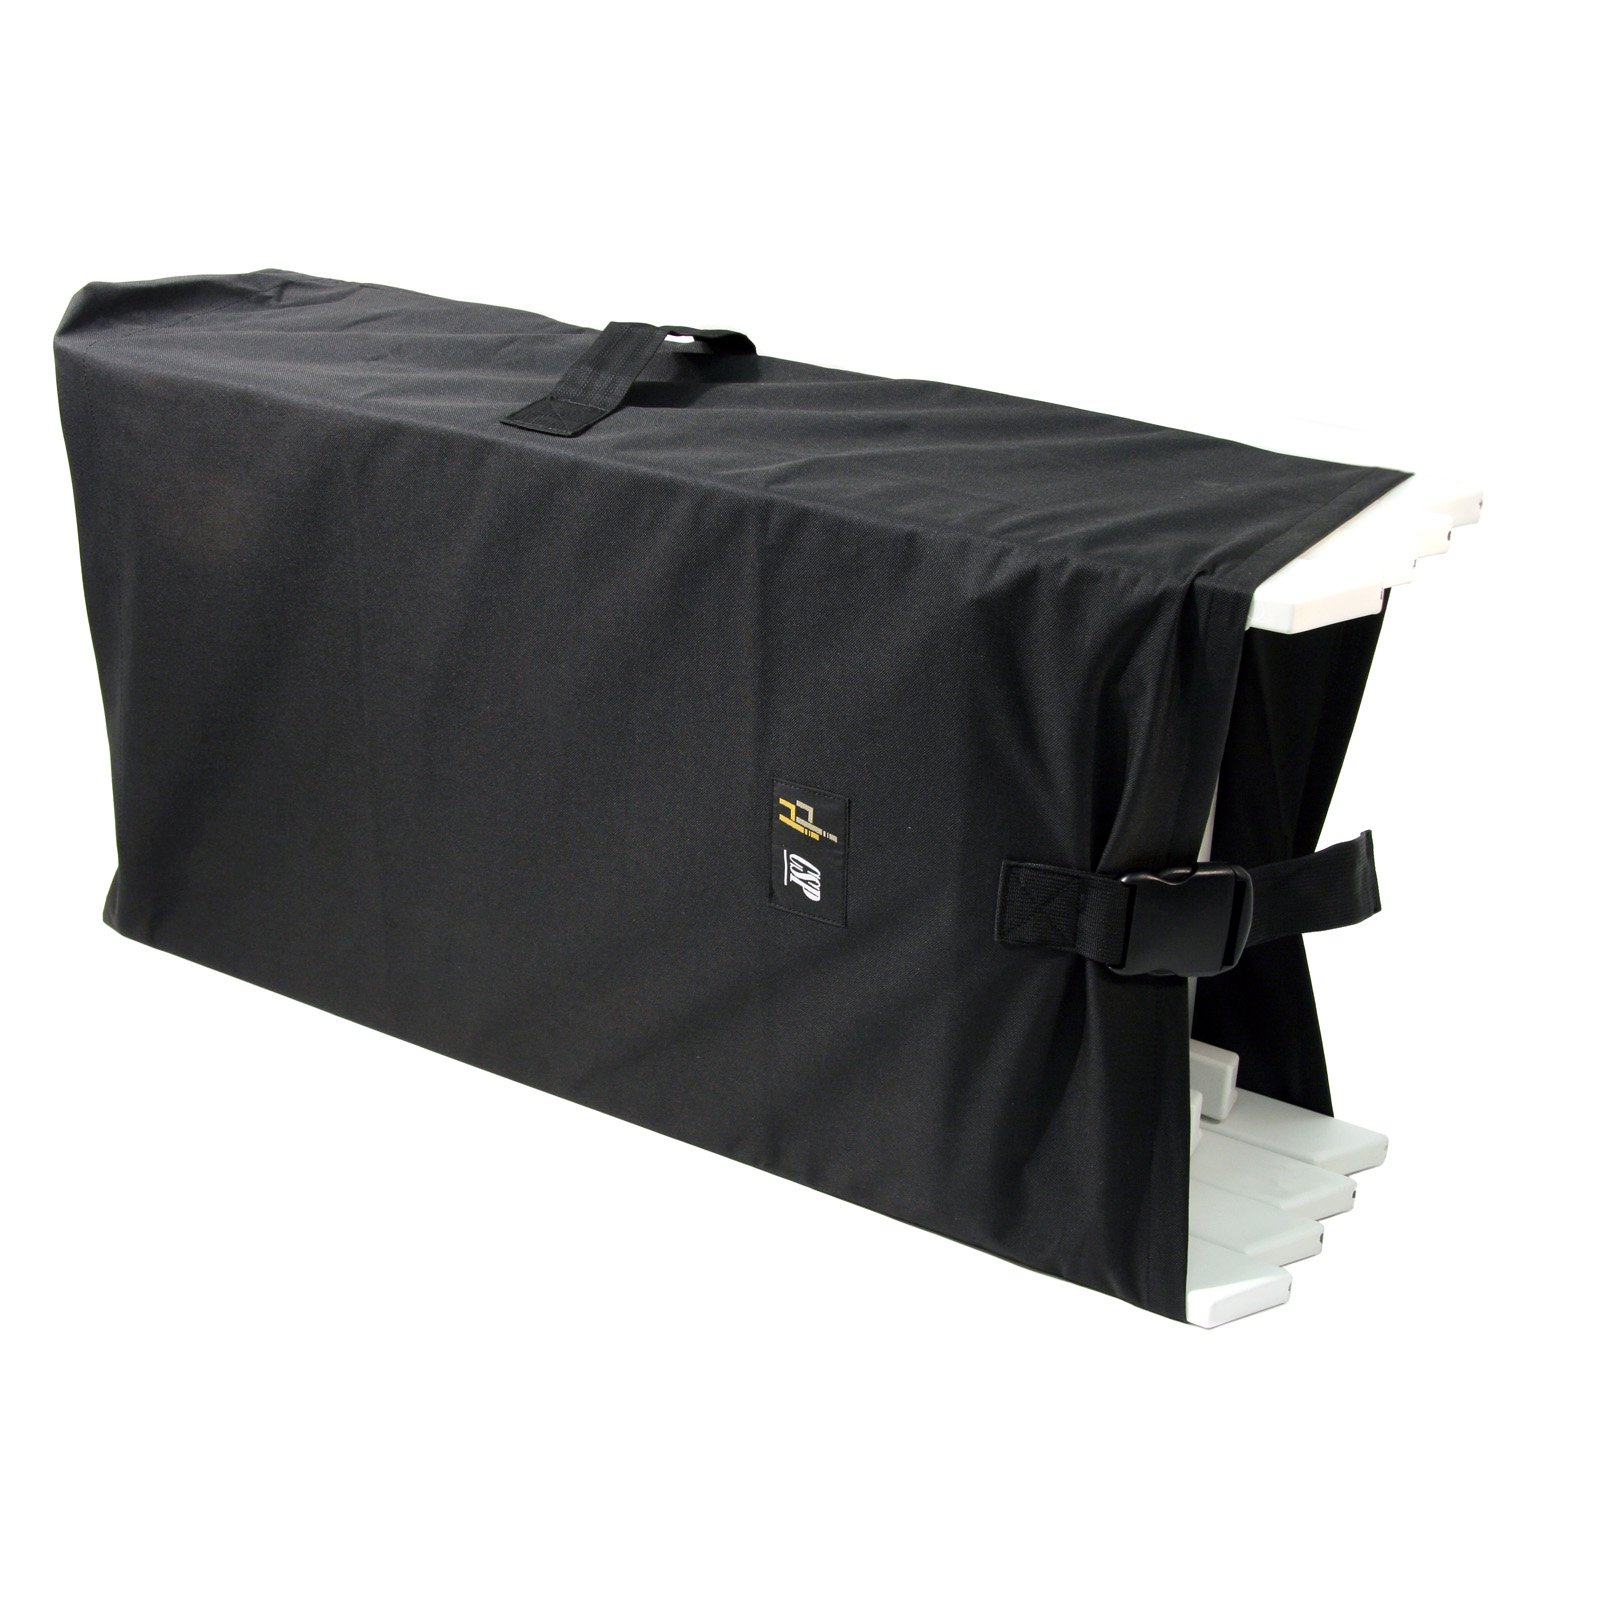 Commercial Seating Products Waterproof Outdoor Folding Chair Storage Bag Walmart Com Walmart Com